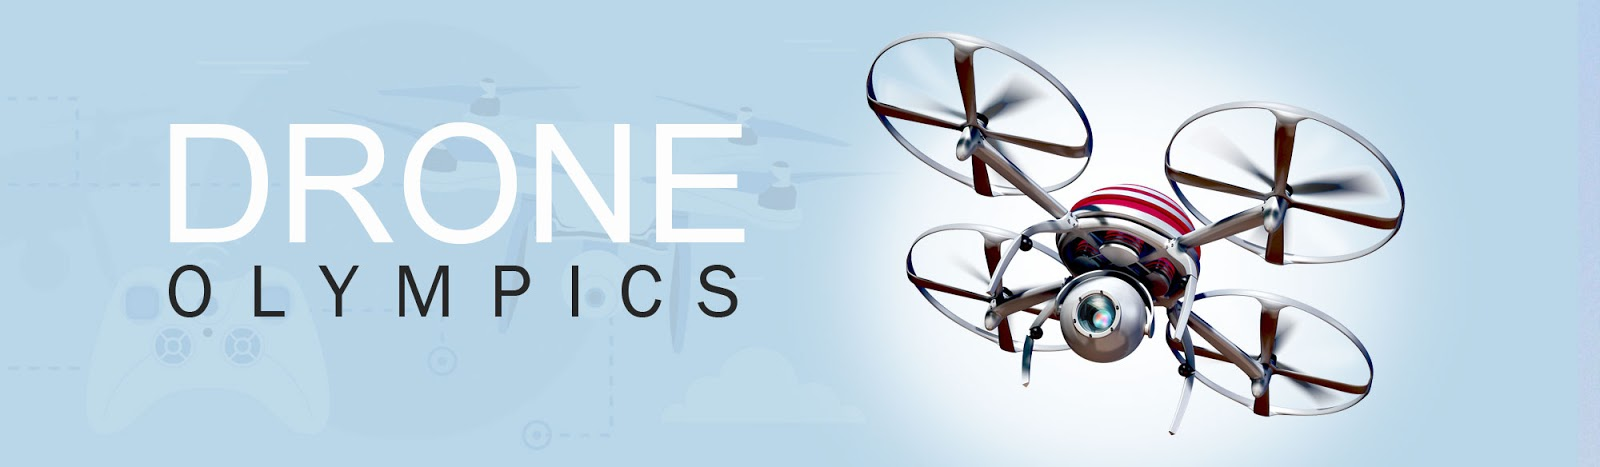 Drone Olympics organized by Aero India 2019: how to register, win